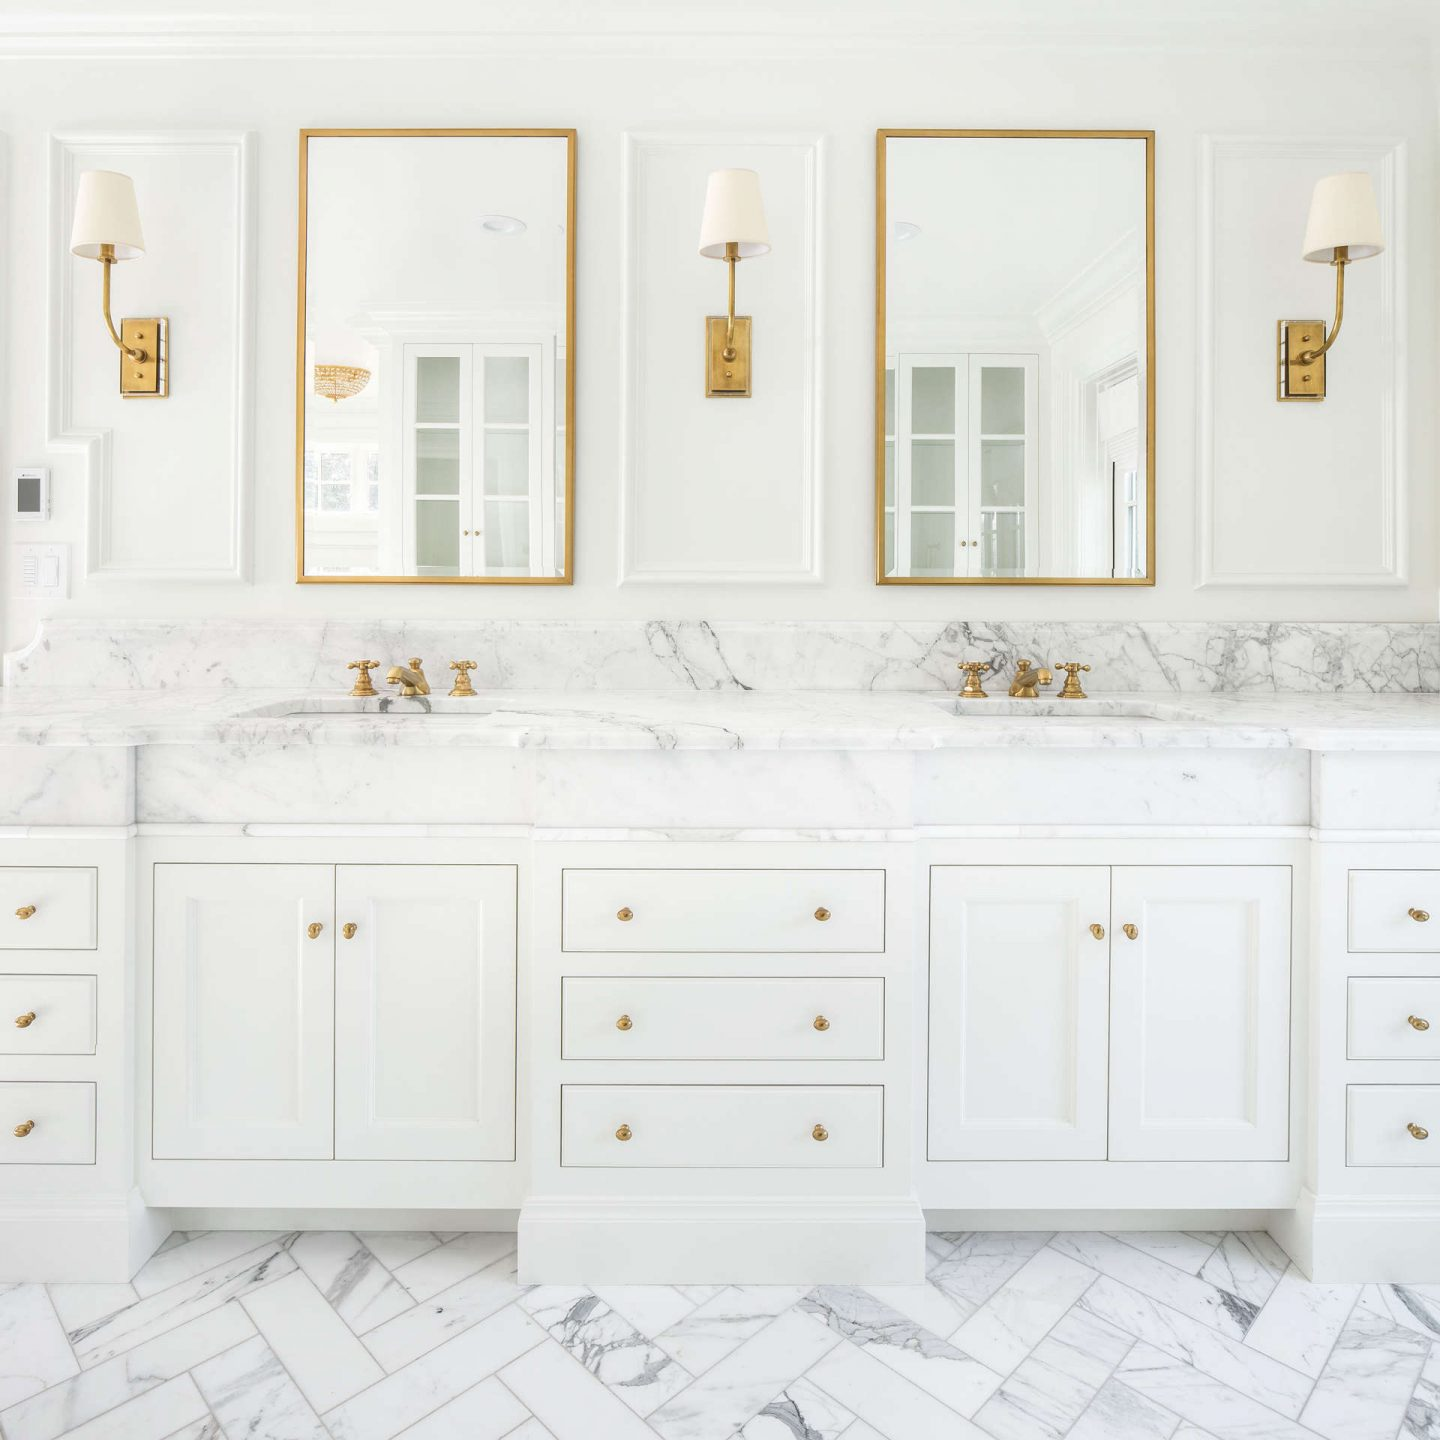 Double vanities in a white classic bathroom with Calacatta marble and brass hardware. #thefoxgroup #bathroom #brasshardware #calacatta